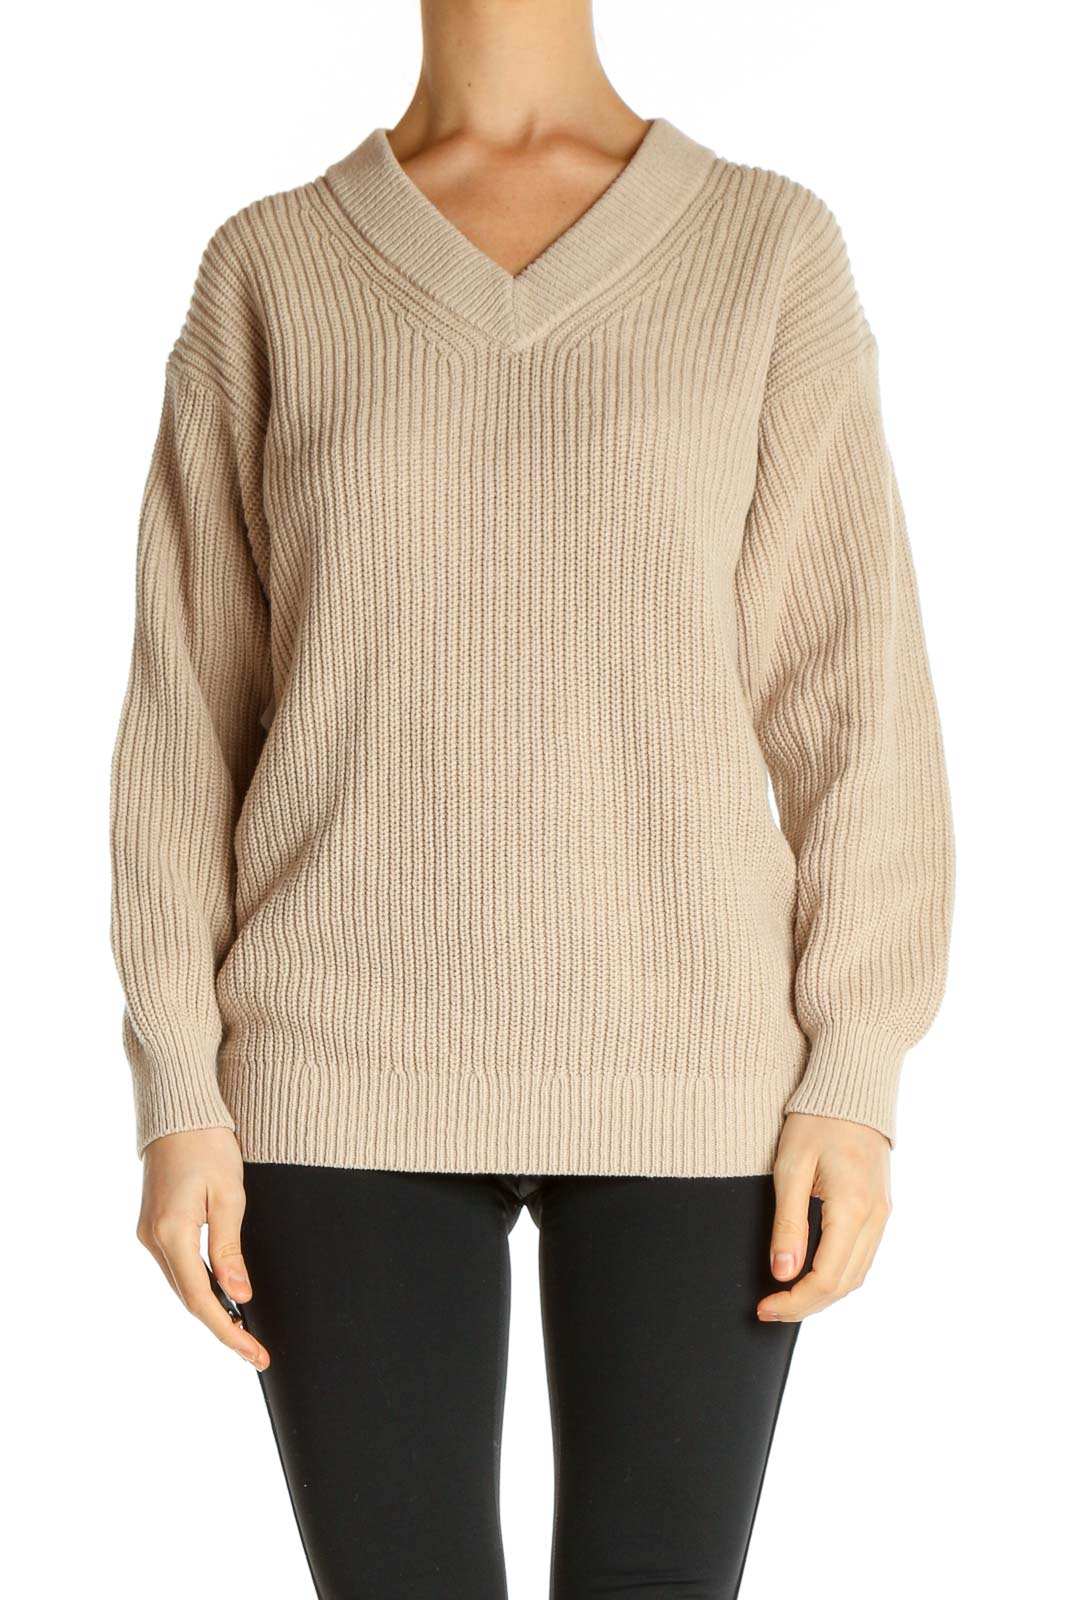 Beige Textured Classic Sweater Front